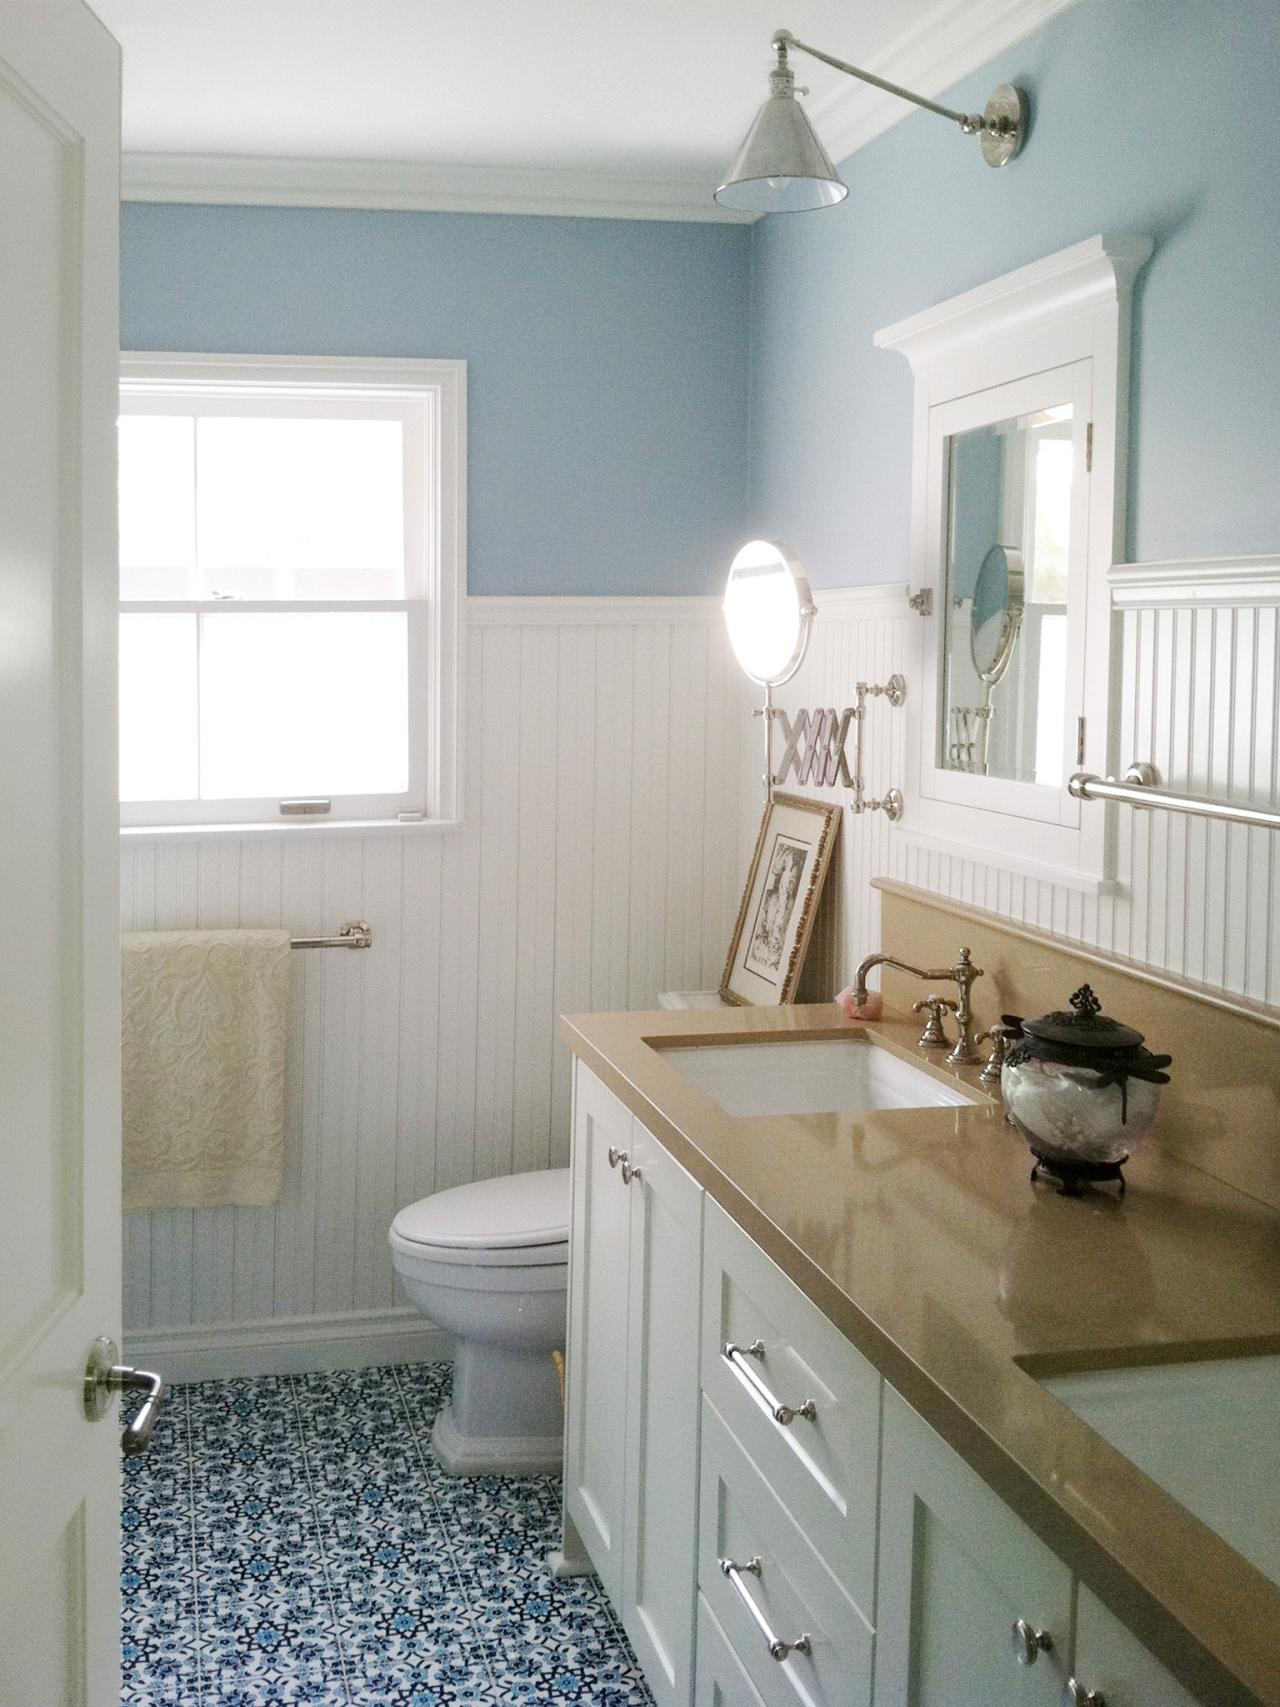 Cottage Bathroom Wall Lights : Design Trend: Decorating With Blue Color Palette and Schemes for Rooms in Your Home HGTV